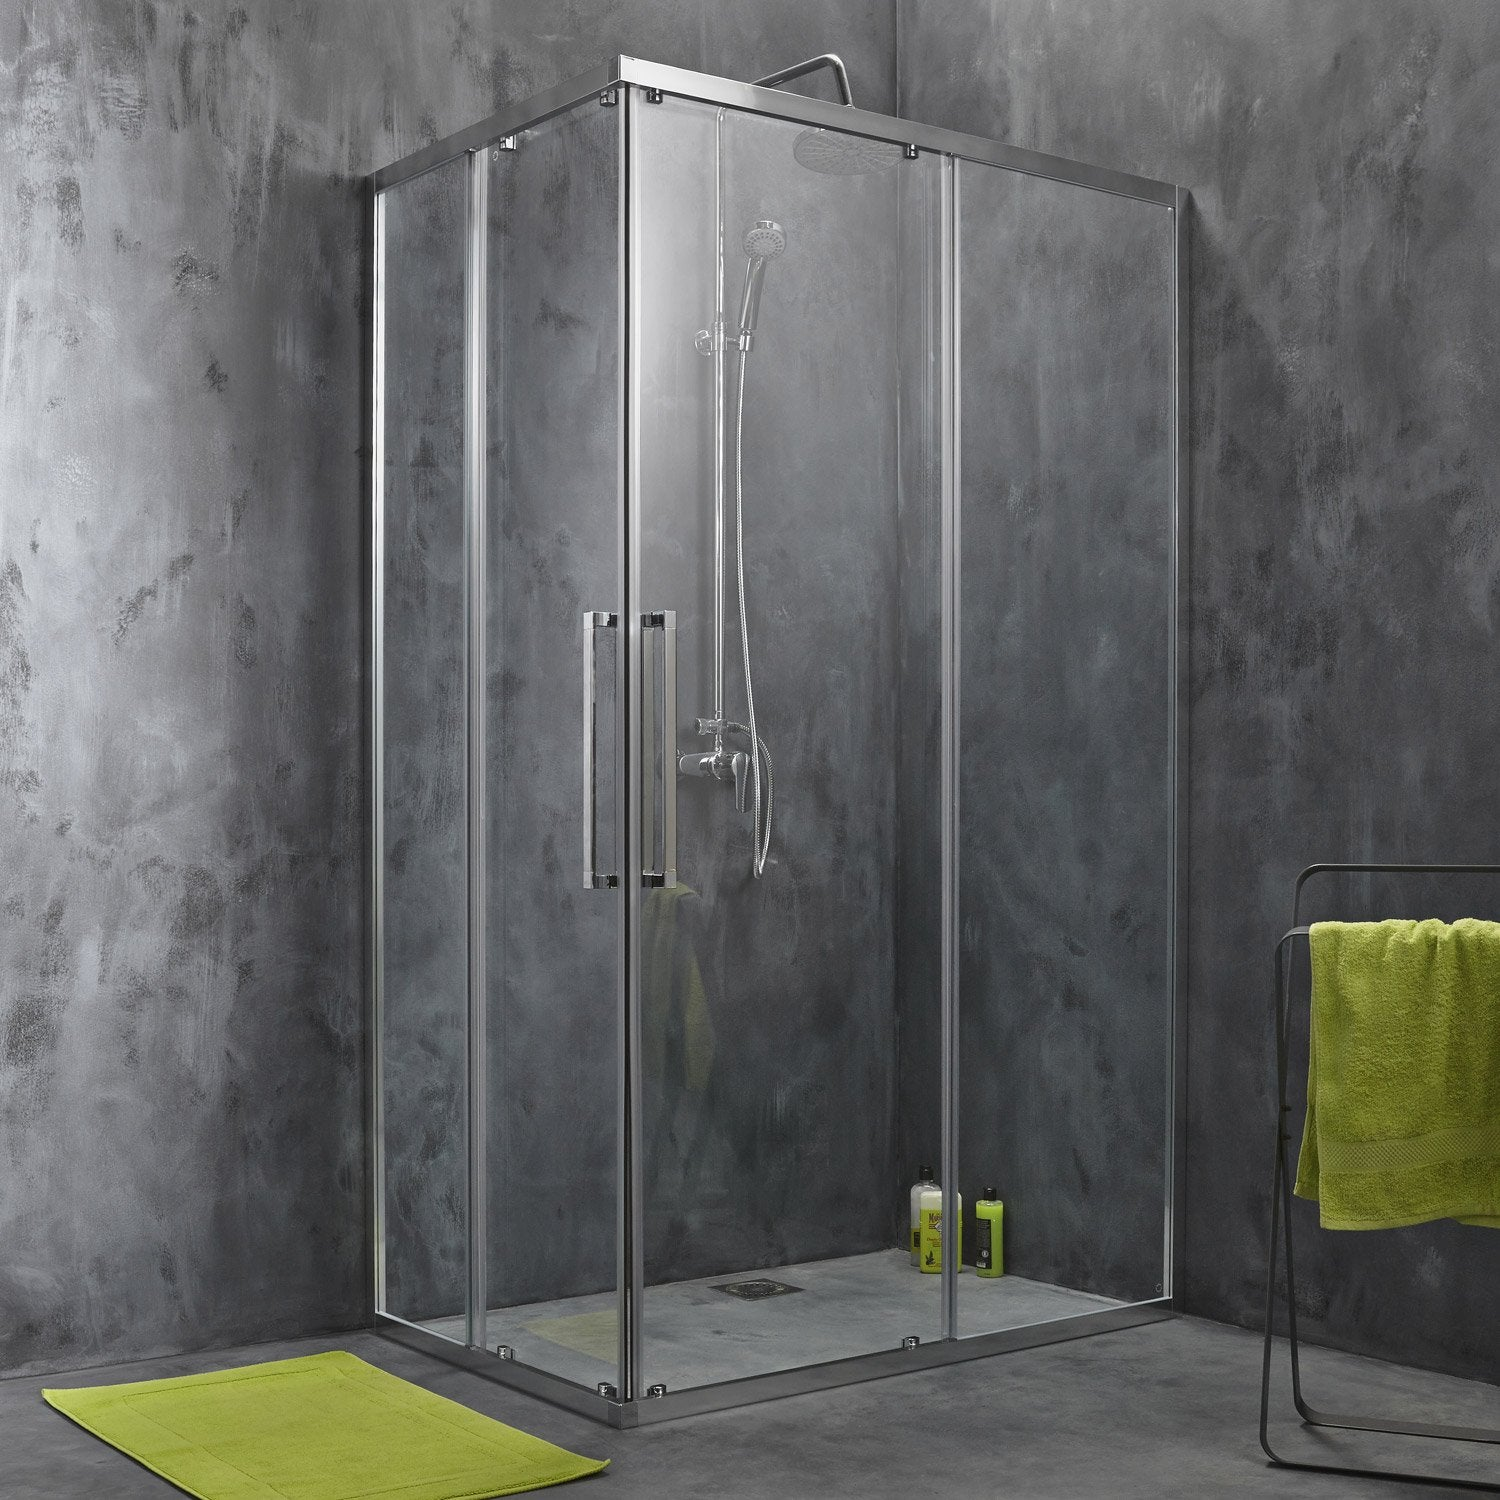 porte de douche coulissante angle rectangle 120 x 80 cm. Black Bedroom Furniture Sets. Home Design Ideas